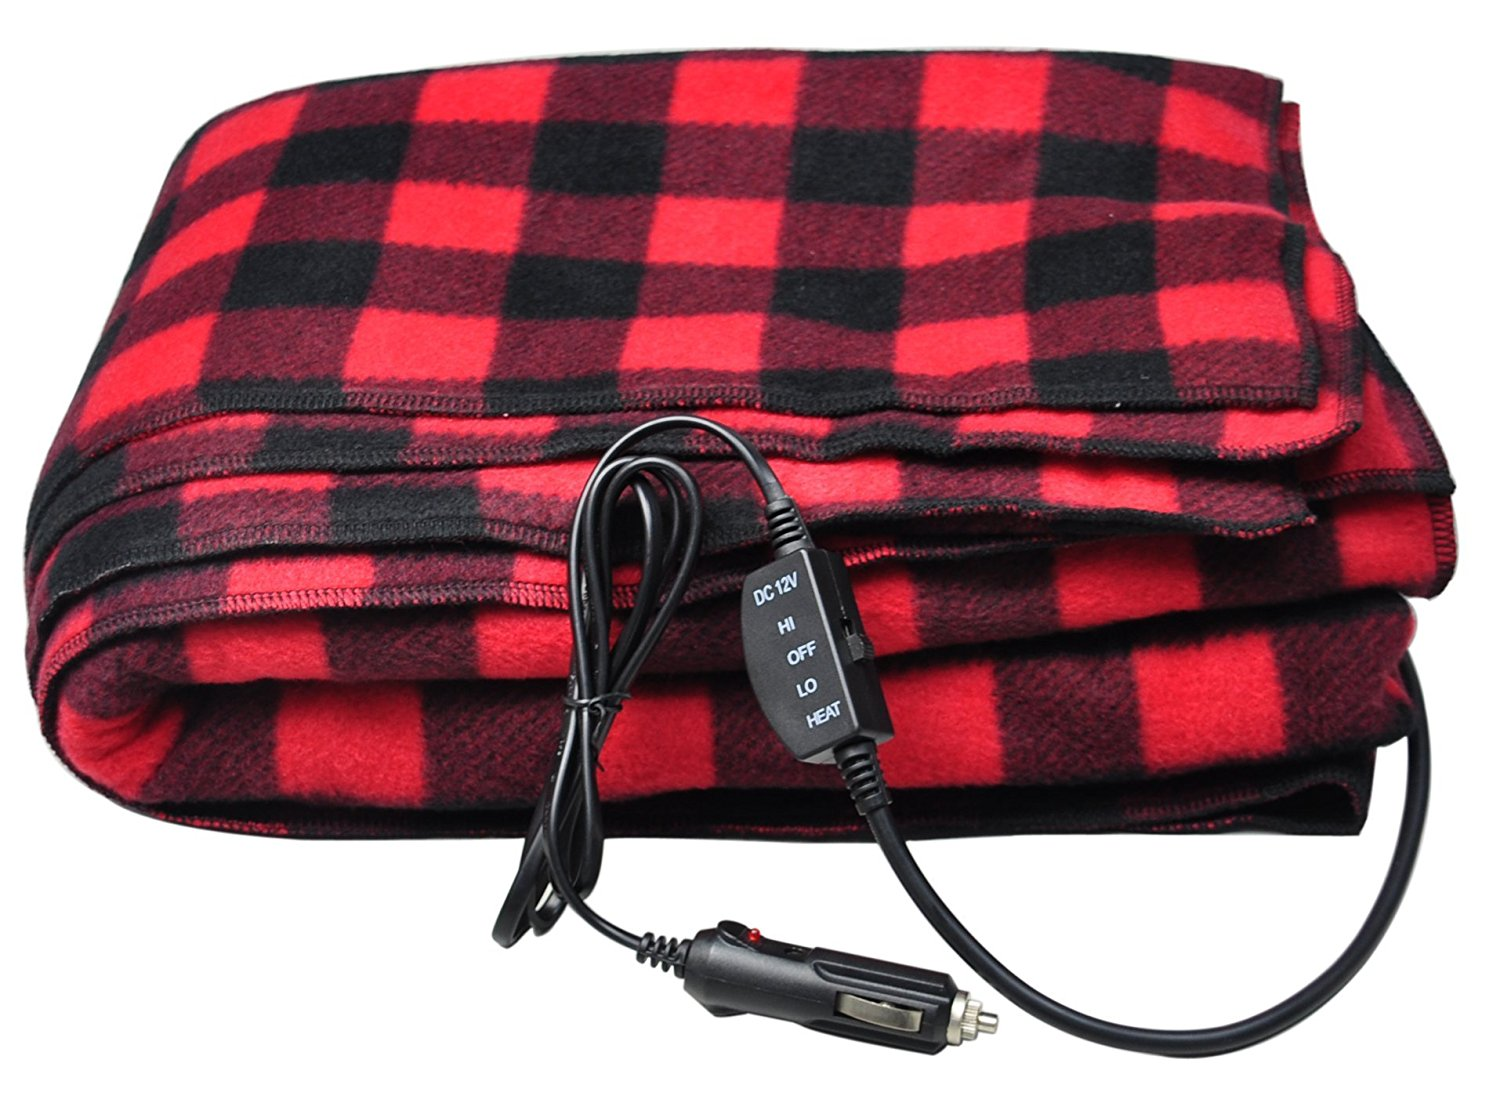 Sports Imports Ltd Usd Ups Ground Priority Mail 3 Day Select Innovative Circuit Ict120126a Comm Series 120vac 12vdc 6 Amp 12v Fleece Heated Electric Travel Blanket 1